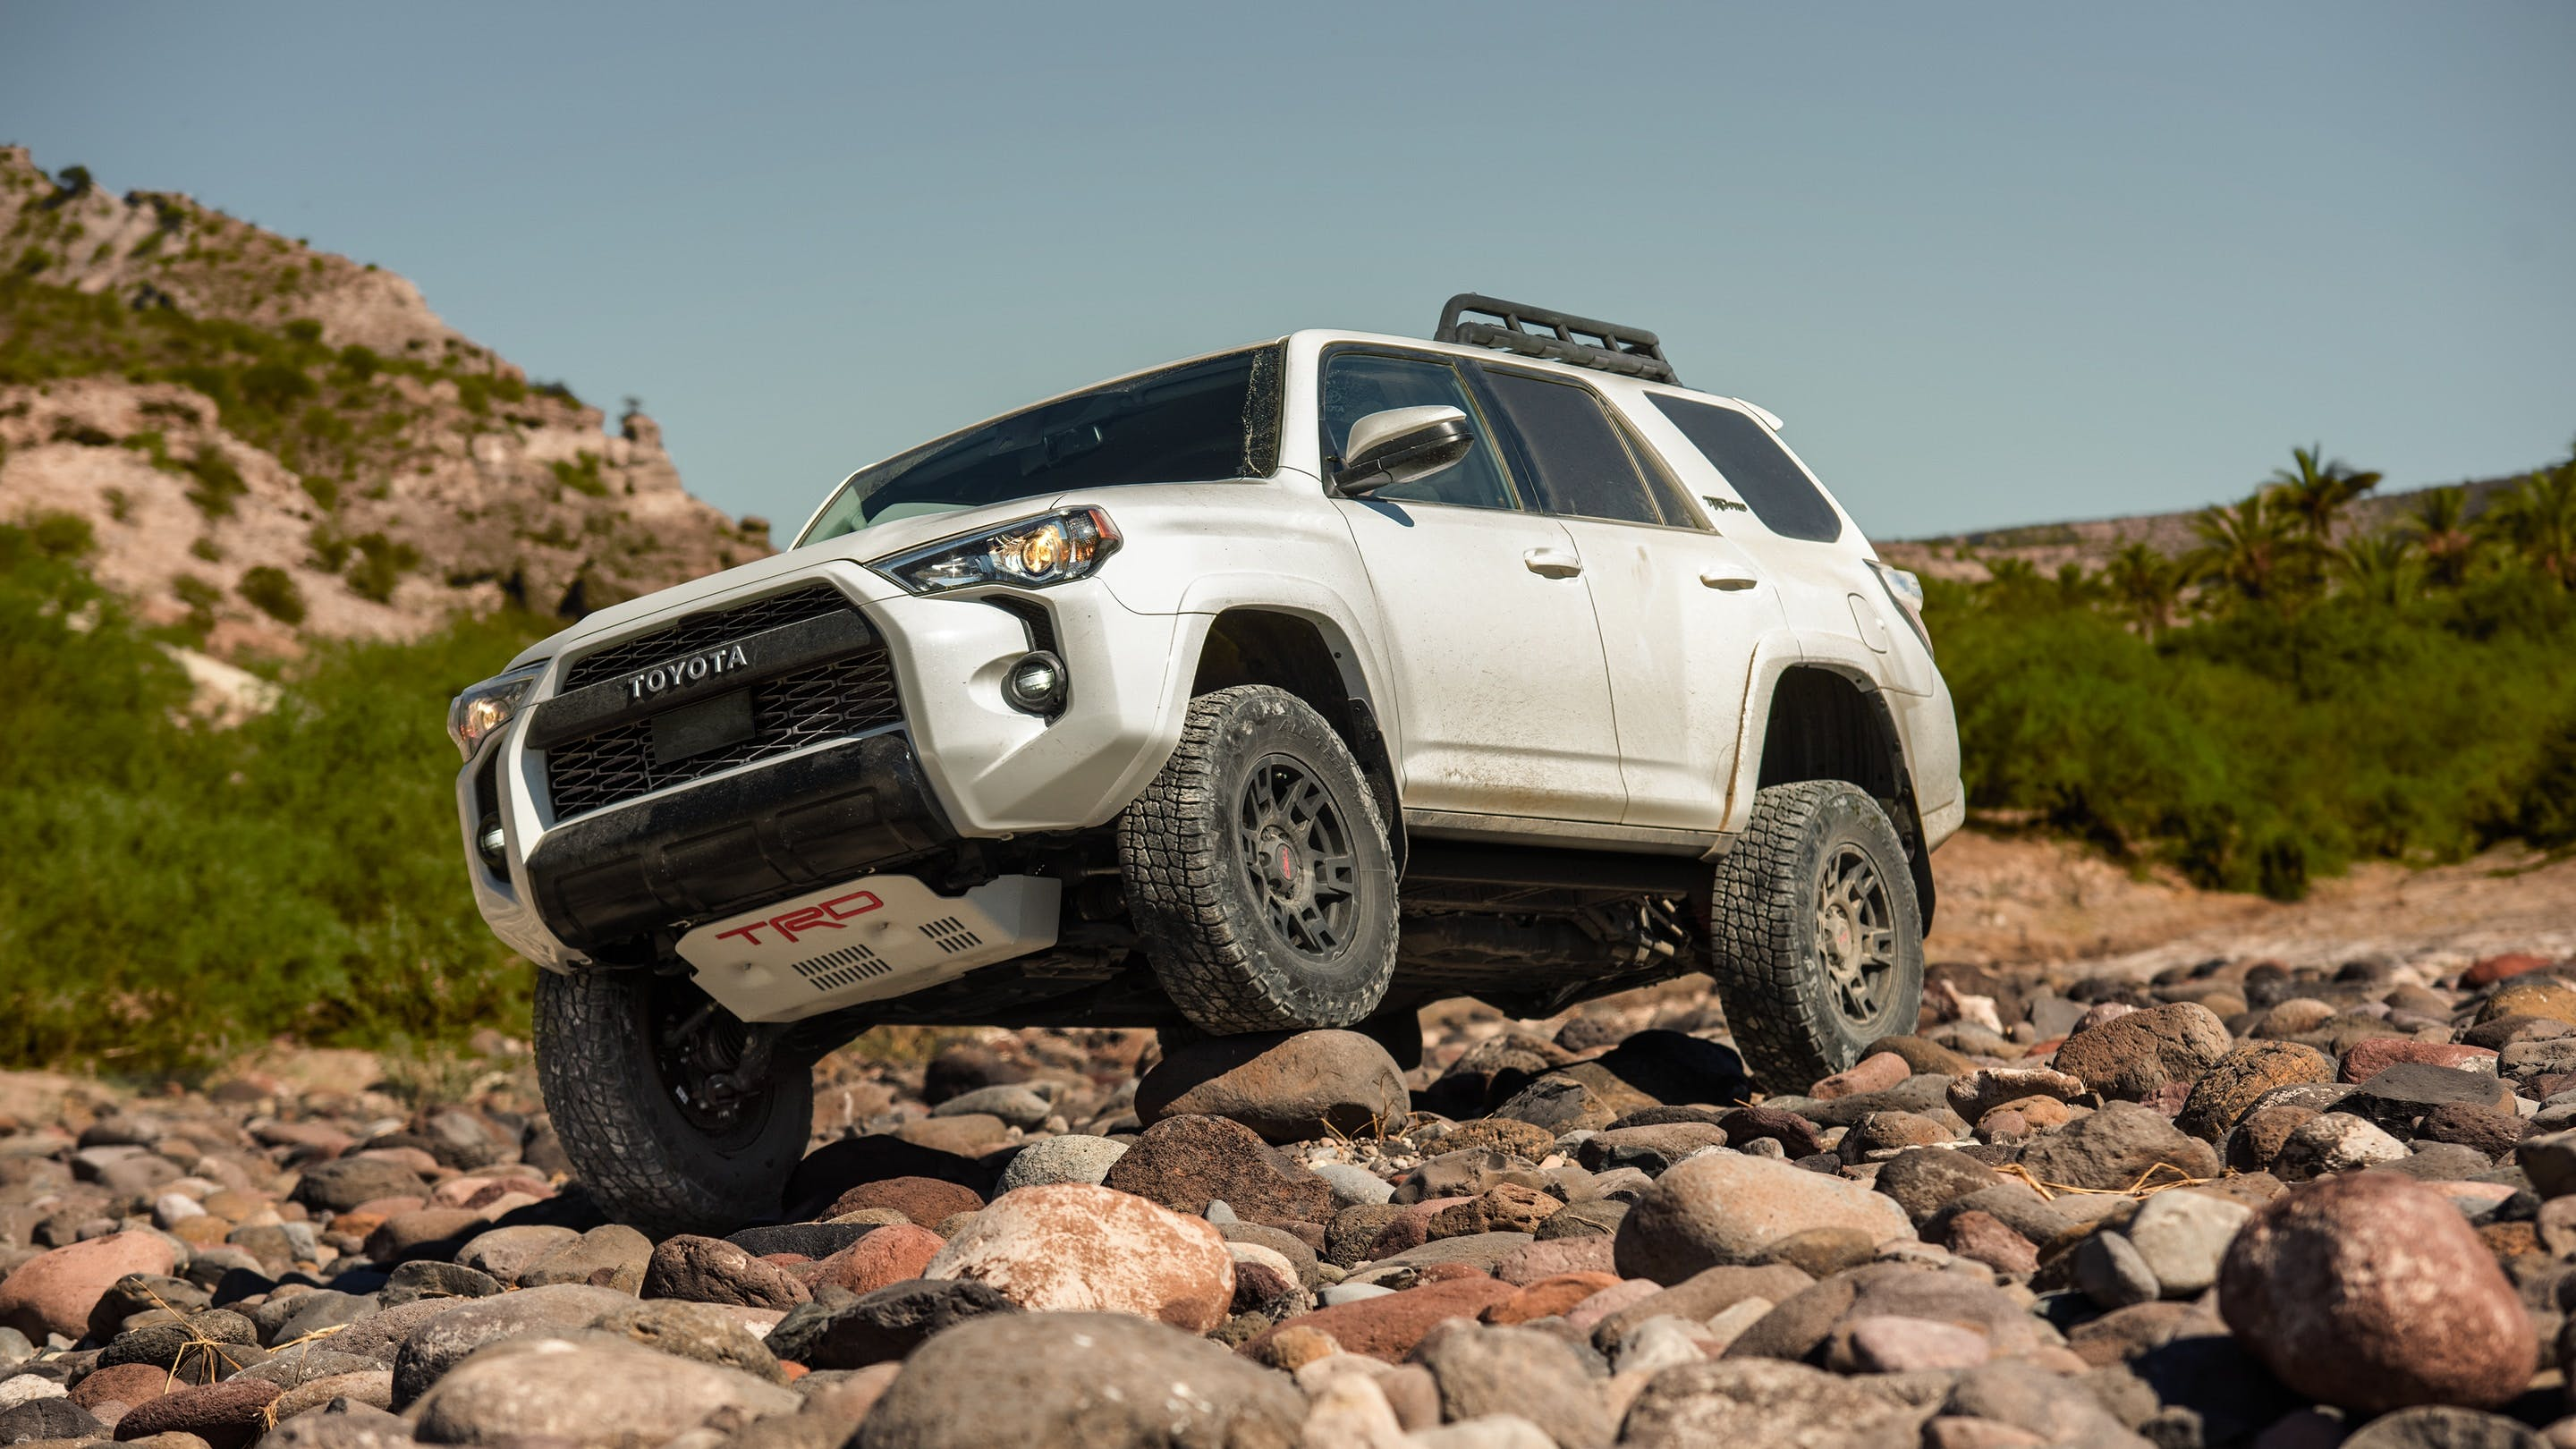 Taylor Toyota of Hermitage - The 2021 Toyota 4Runner is a safe and reliable vehicle near Youngstown OH